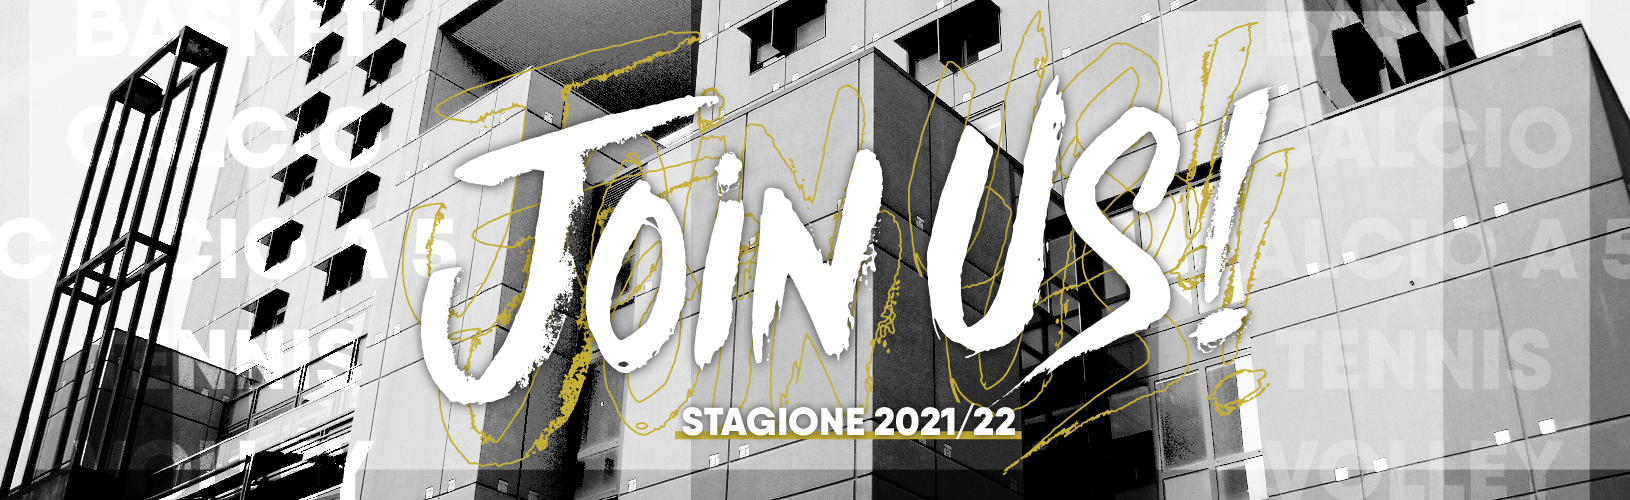 Join Us! • CUS Bicocca • 2021/22